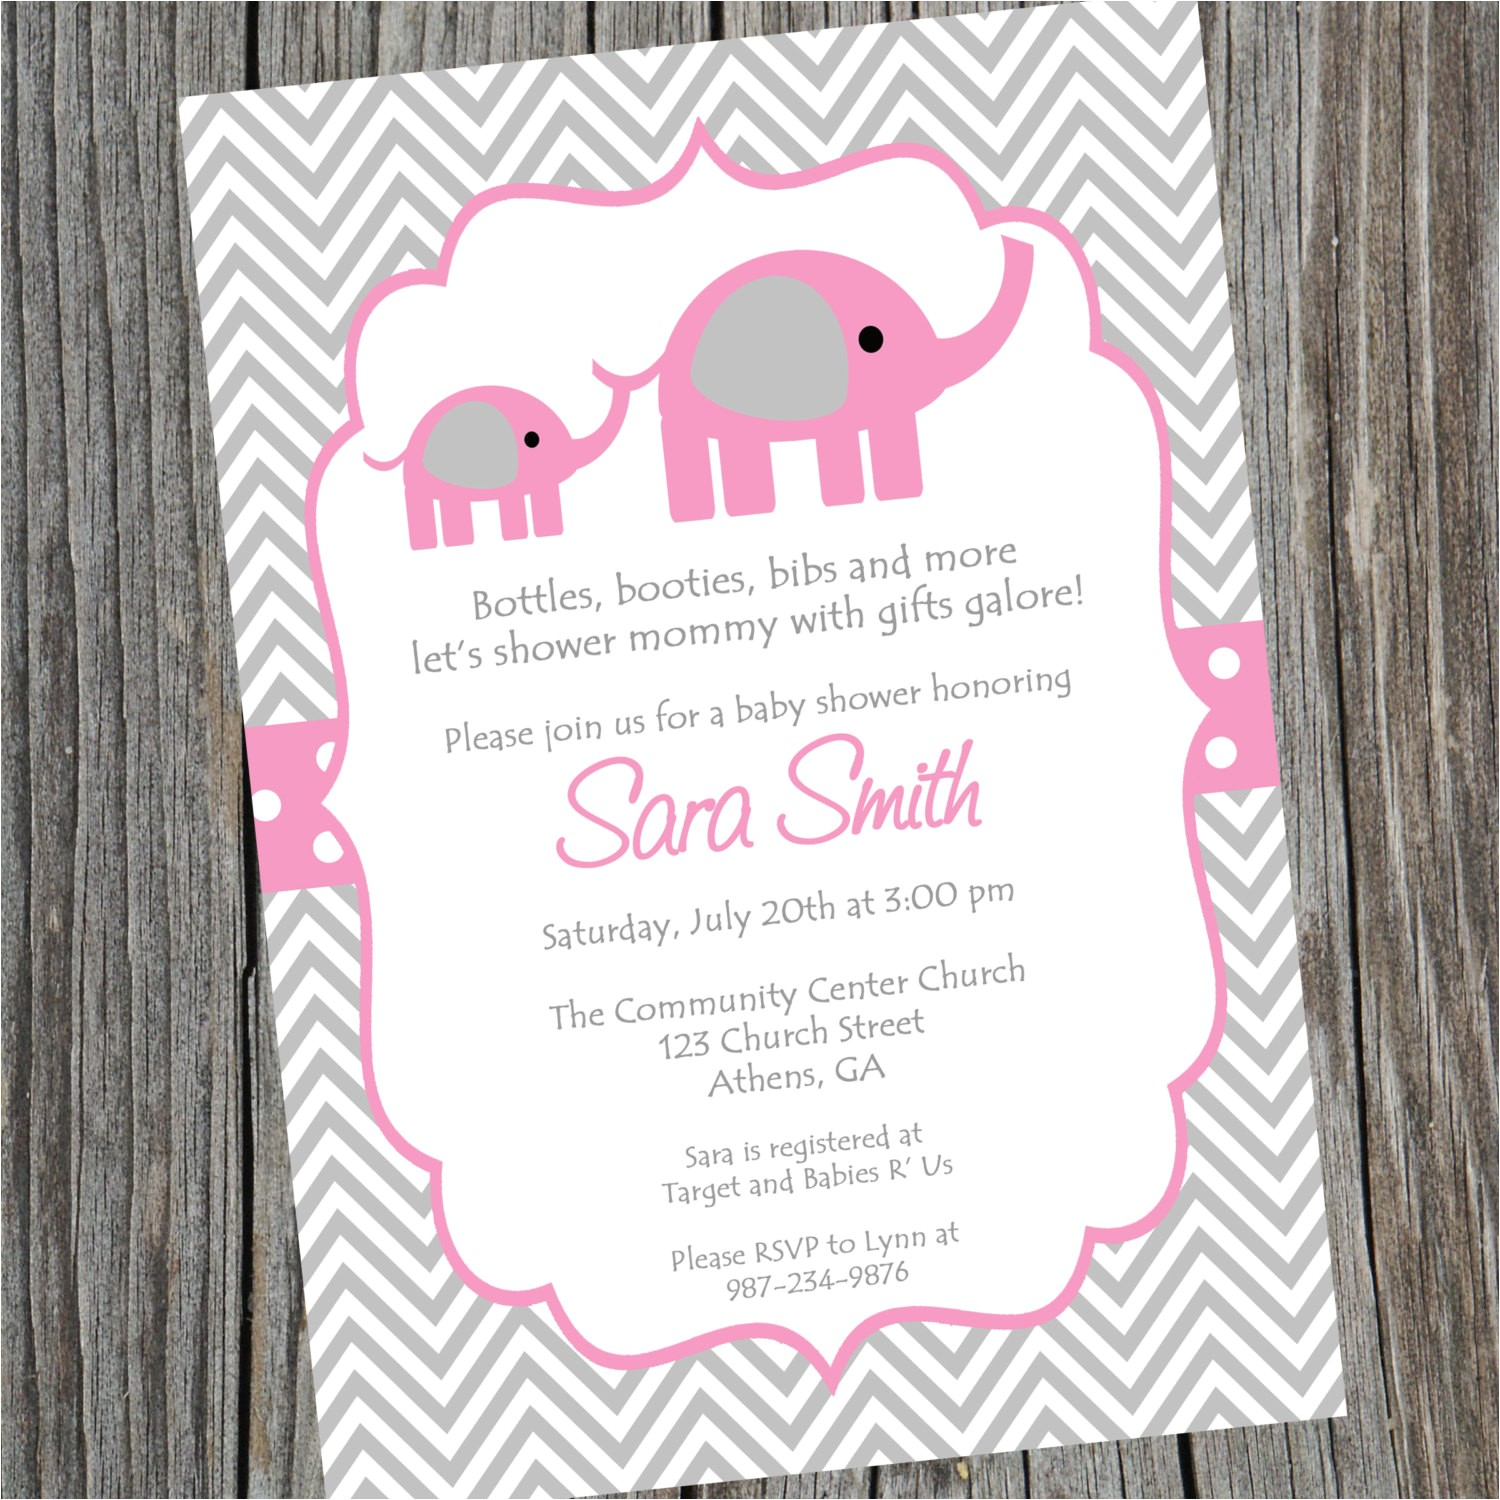 Party City Baby Shower Invitations Girl Elephant Baby Shower Invitations Party City – Invitations